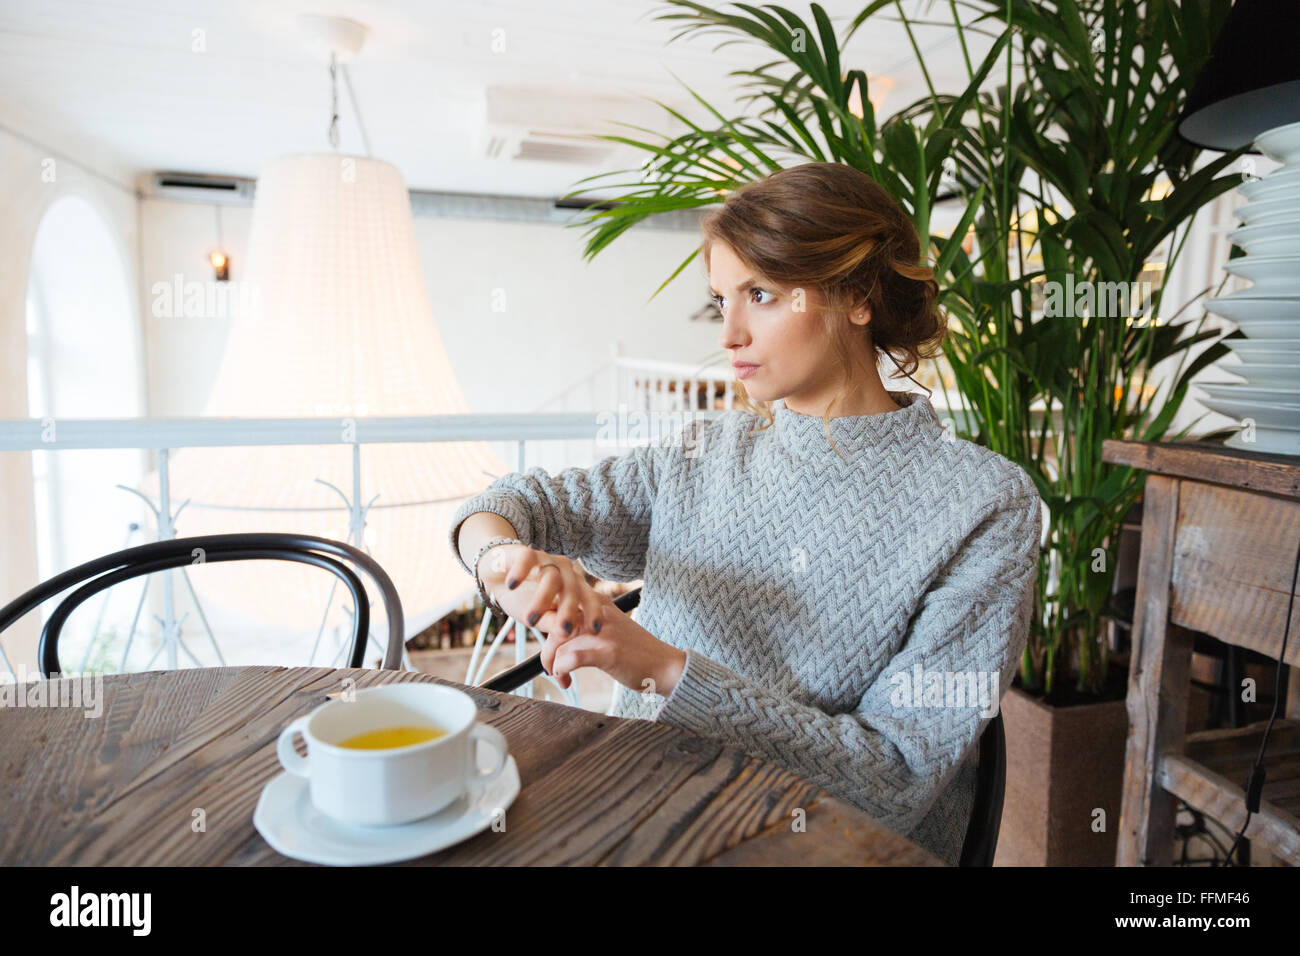 Woman waiting for somebody in cafe - Stock Image